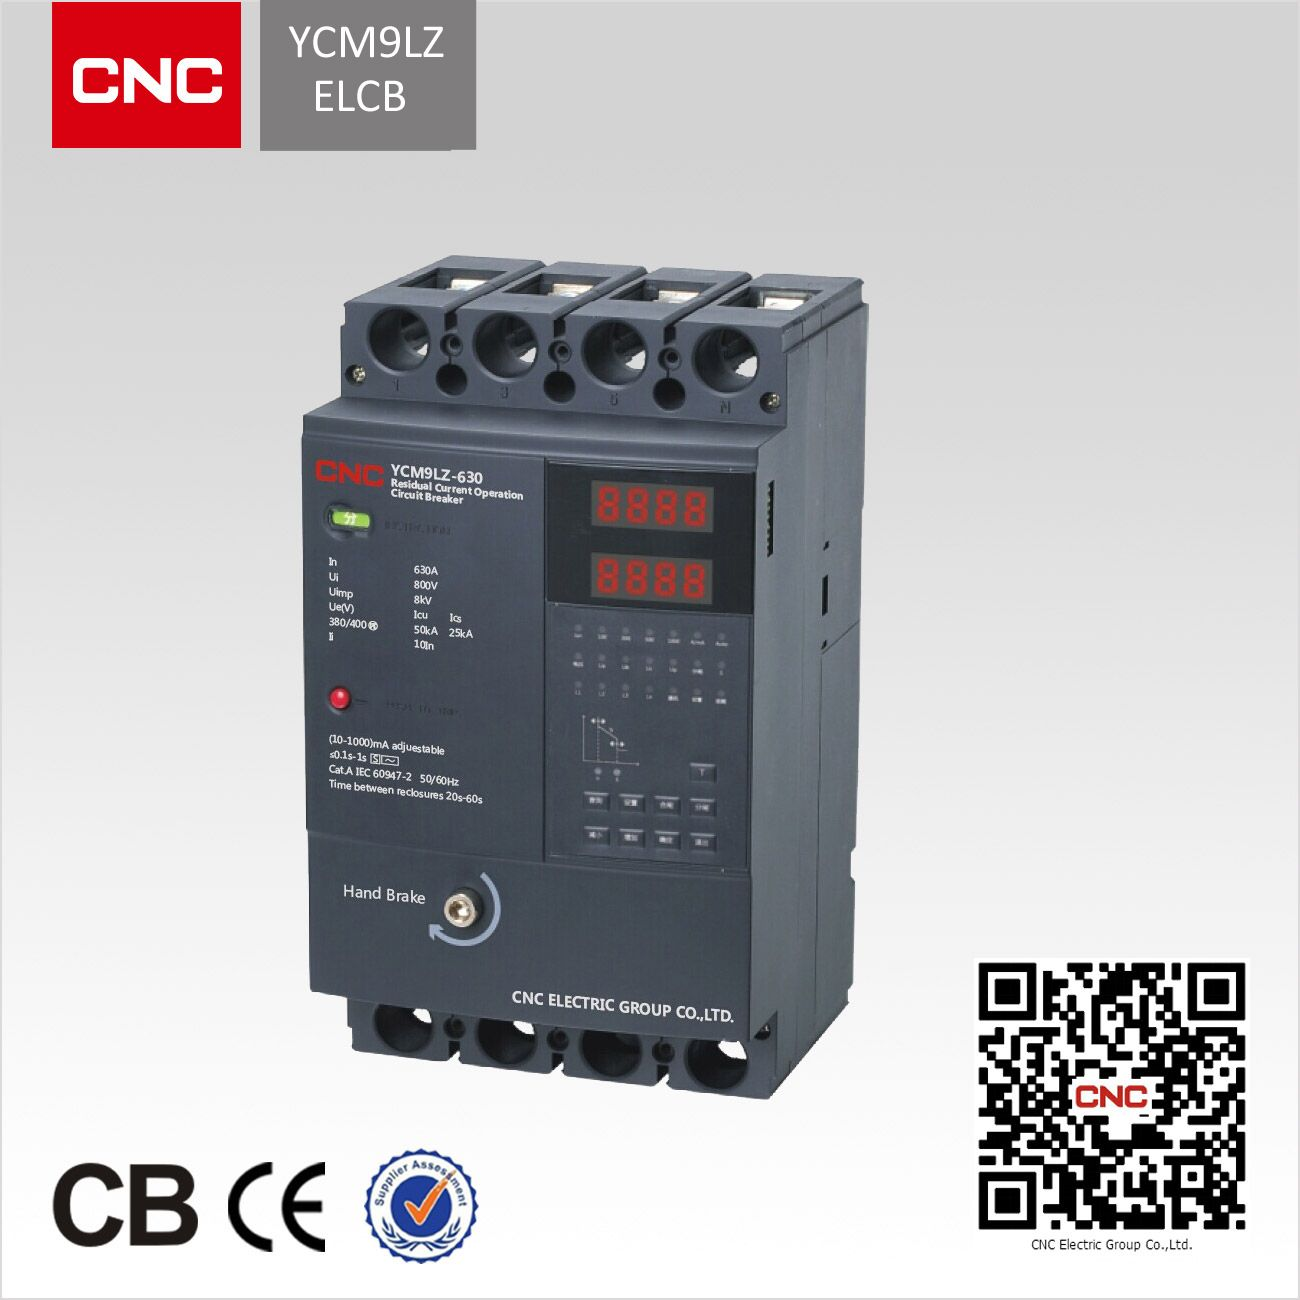 YCM9LZ ELCB Earth Leakage Circuit Breaker